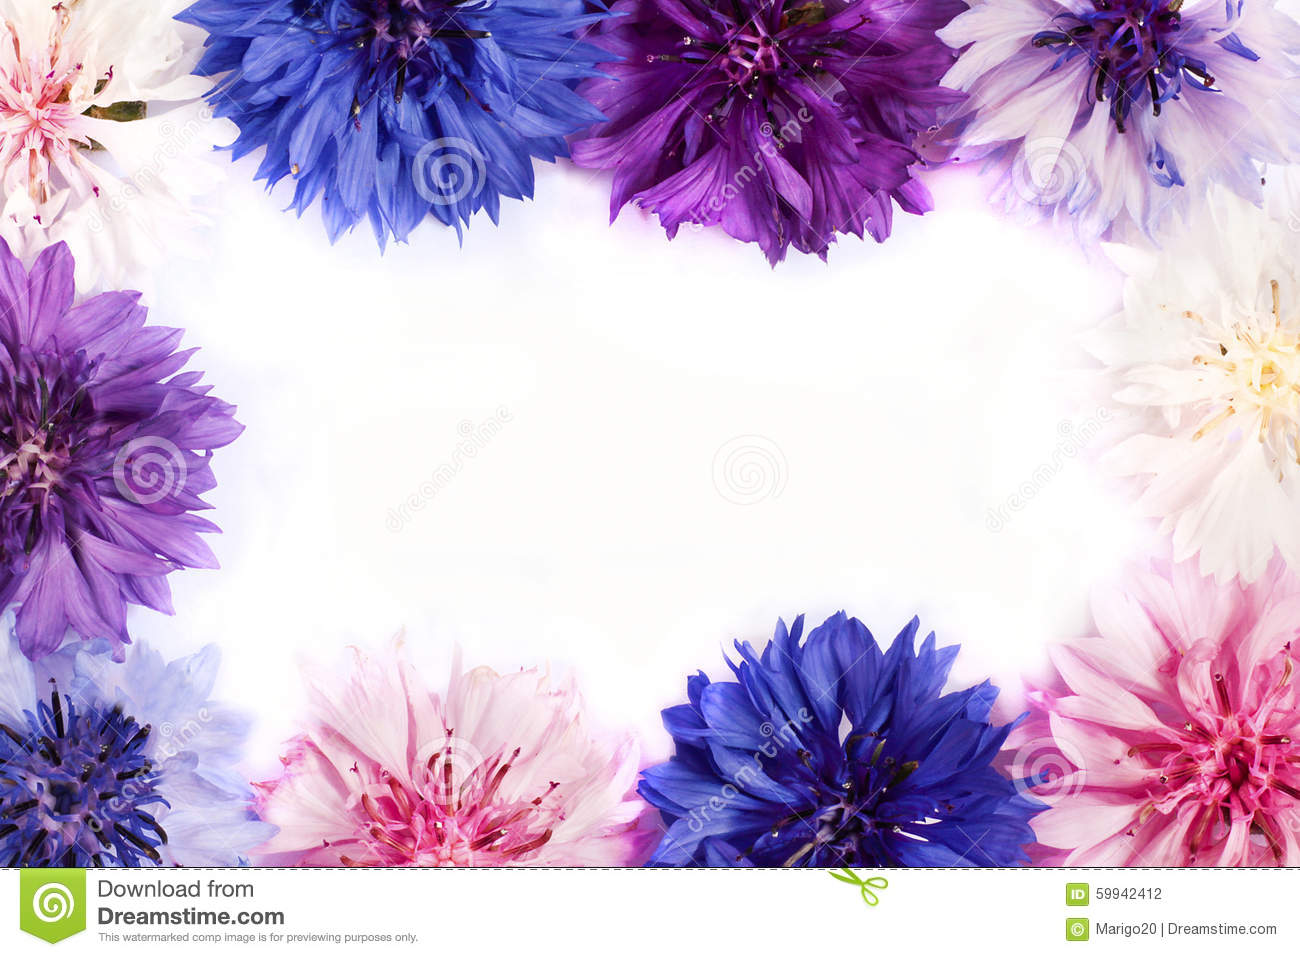 Cornflowers stock photo image 59942412 for What makes flowers different colors